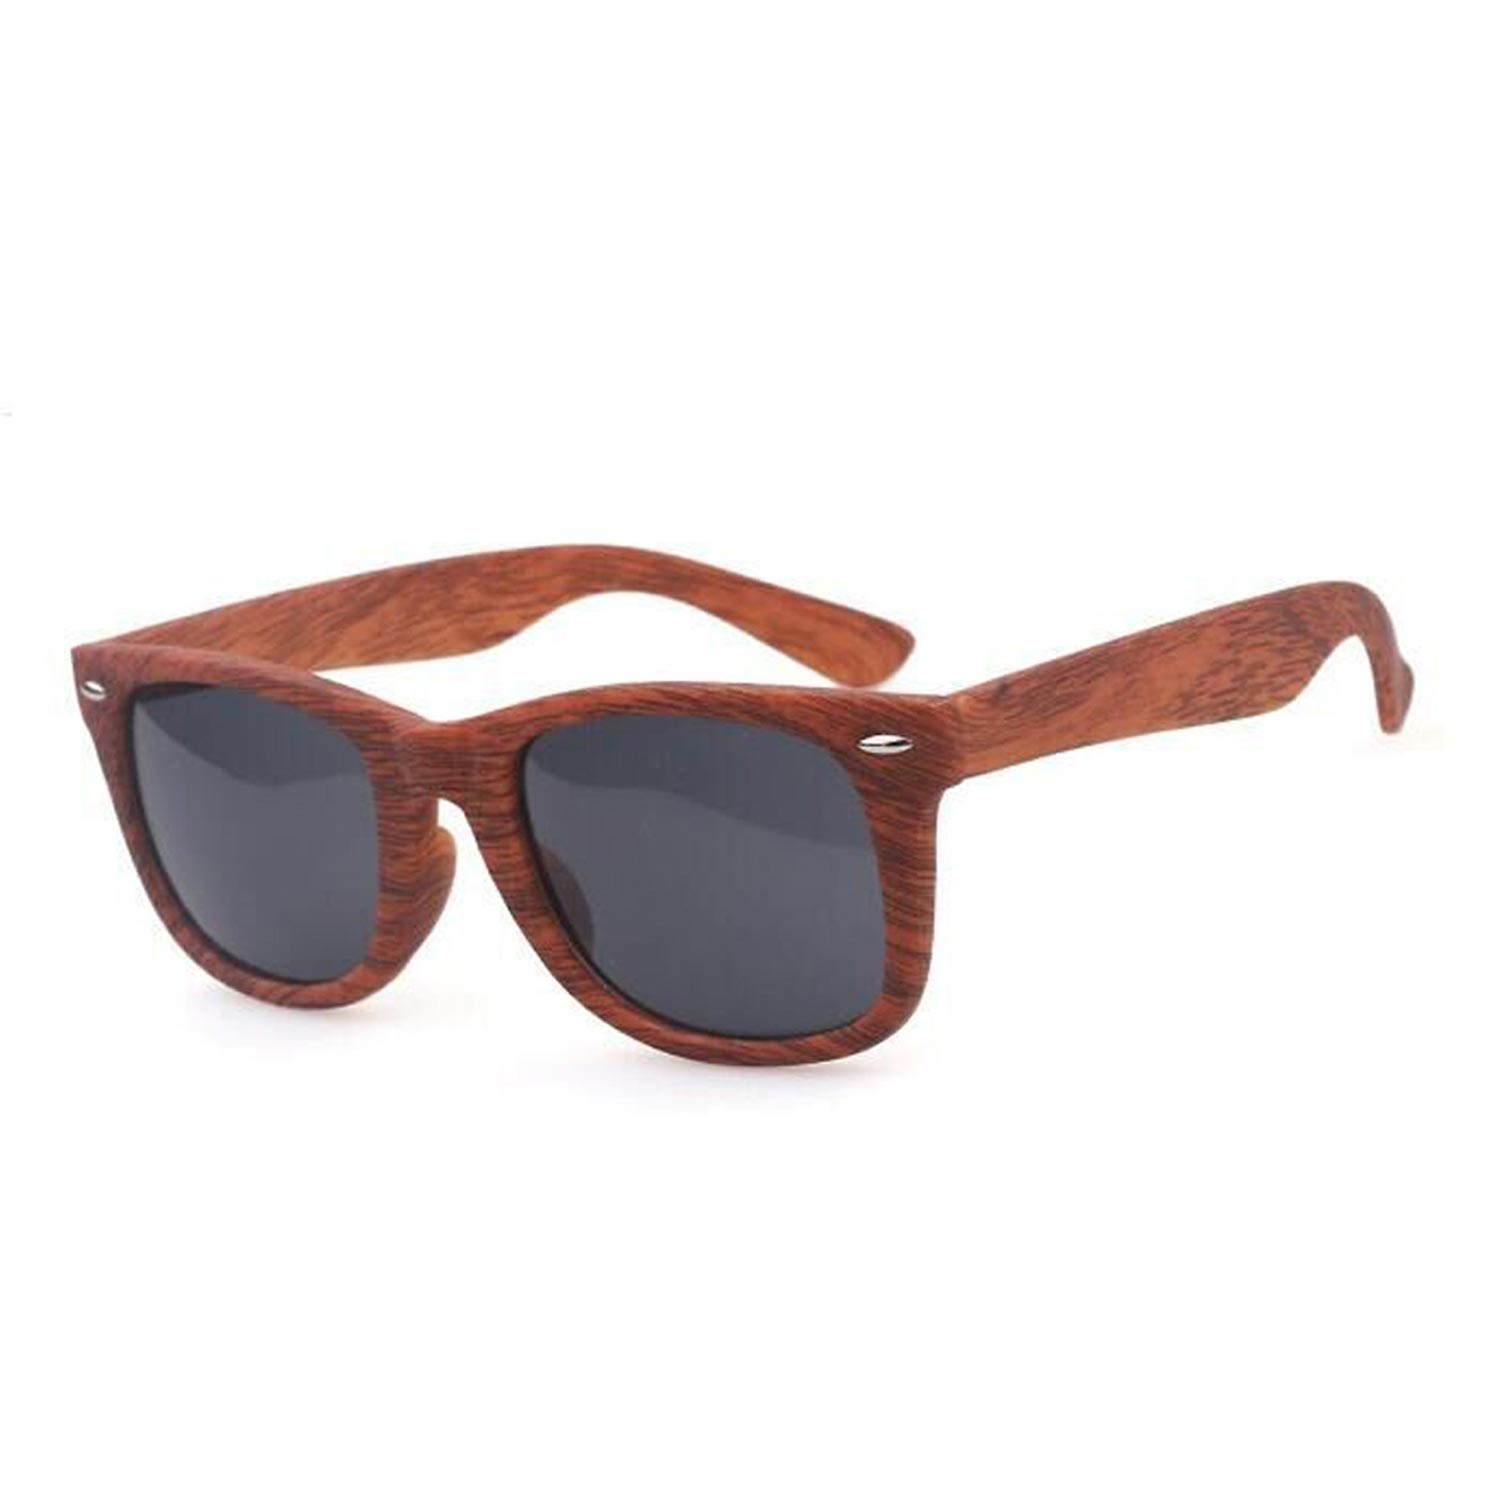 Imitation Wooden Sunglasses for Men and Women Eyewear- Assorted Colors